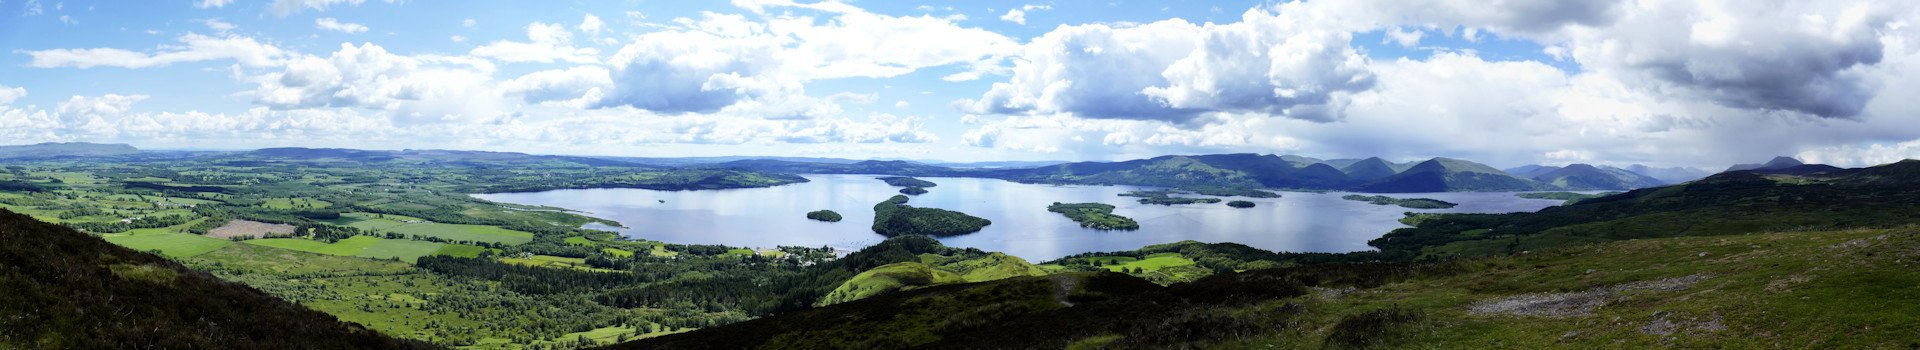 West Highland Way – Etappe 2